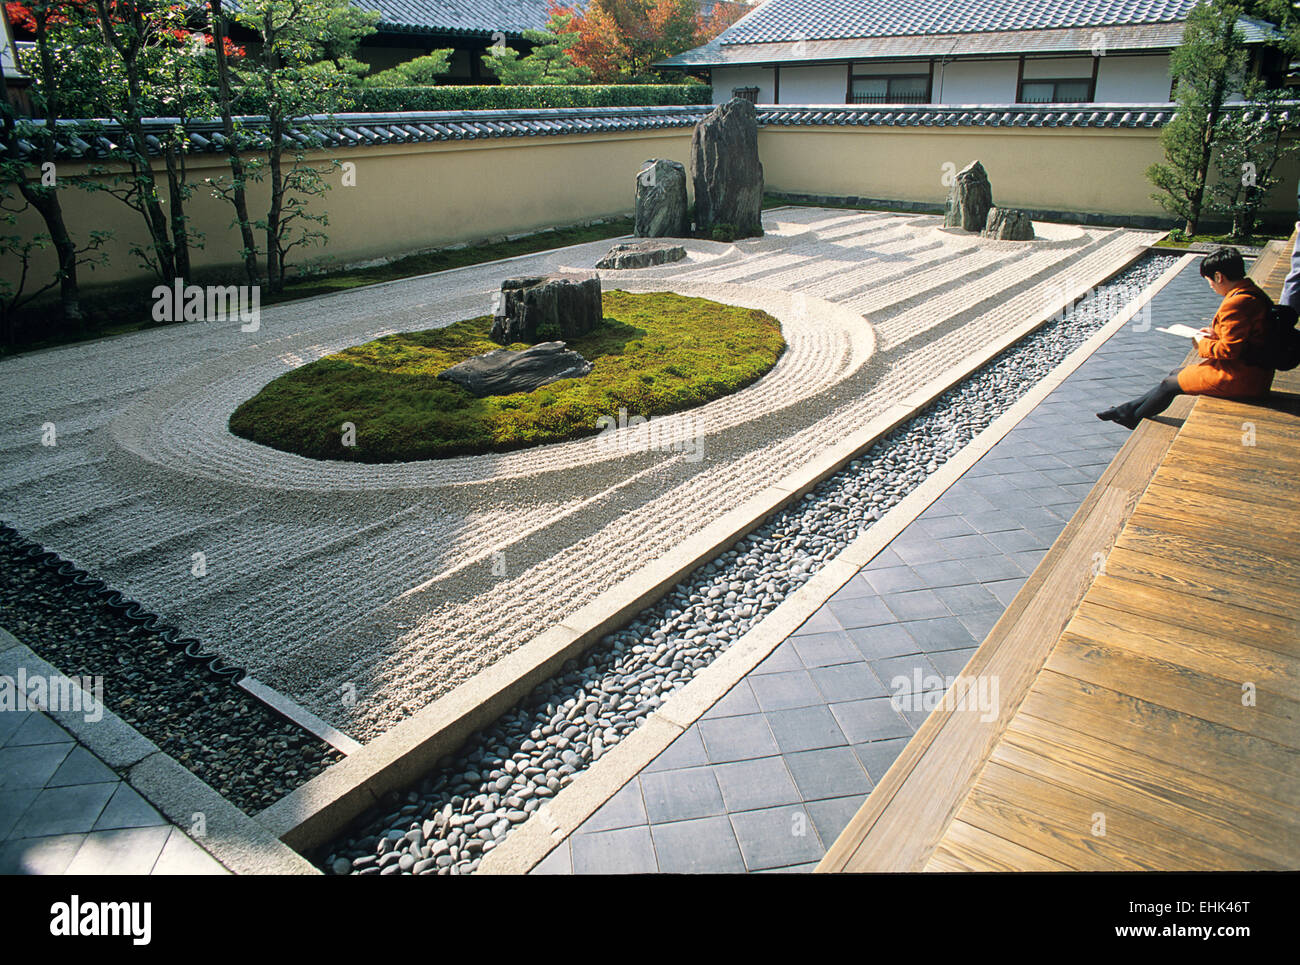 Ryoanji is a subtemple of Daitokuji and is one of several Zen gardens that were founded in the 15th century. - Stock Image